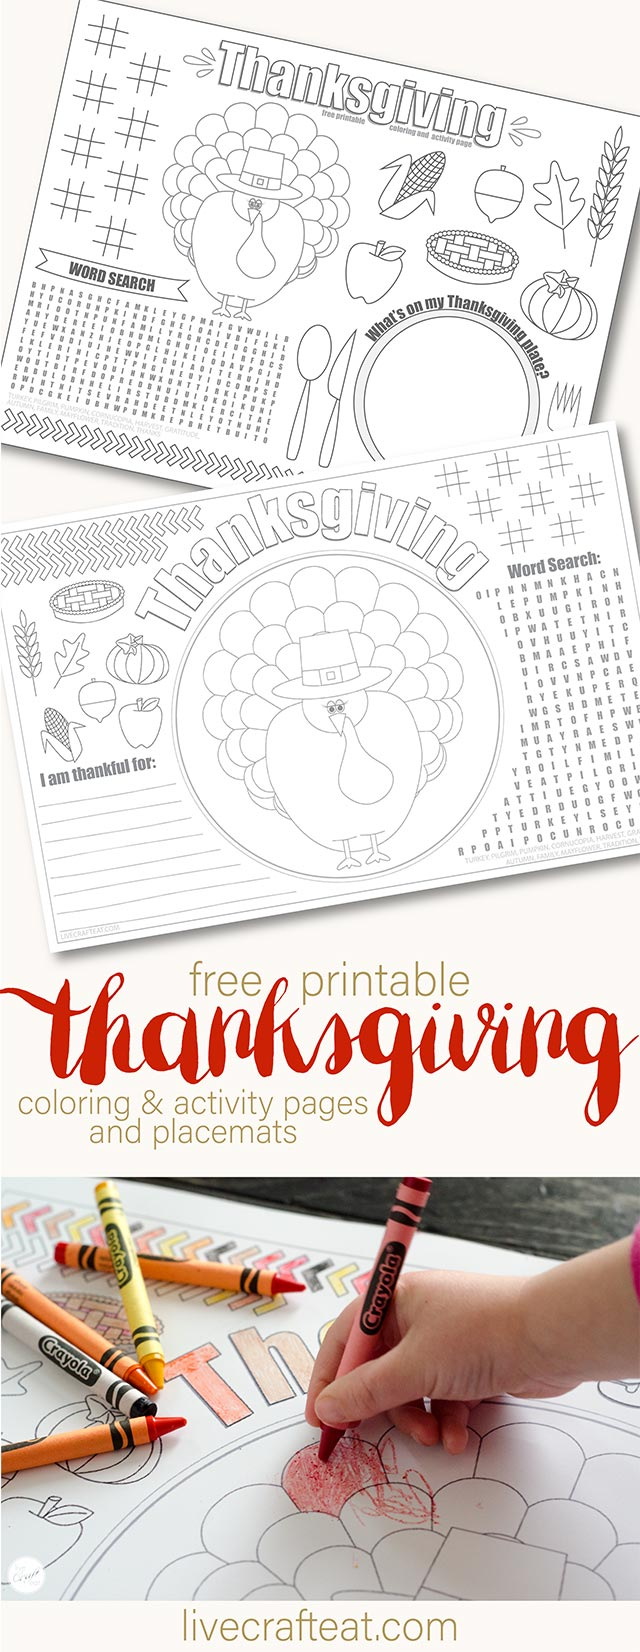 image regarding Free Printable Thanksgiving Placemats known as Printable Thanksgiving Placemats For Young children - Absolutely free Stay